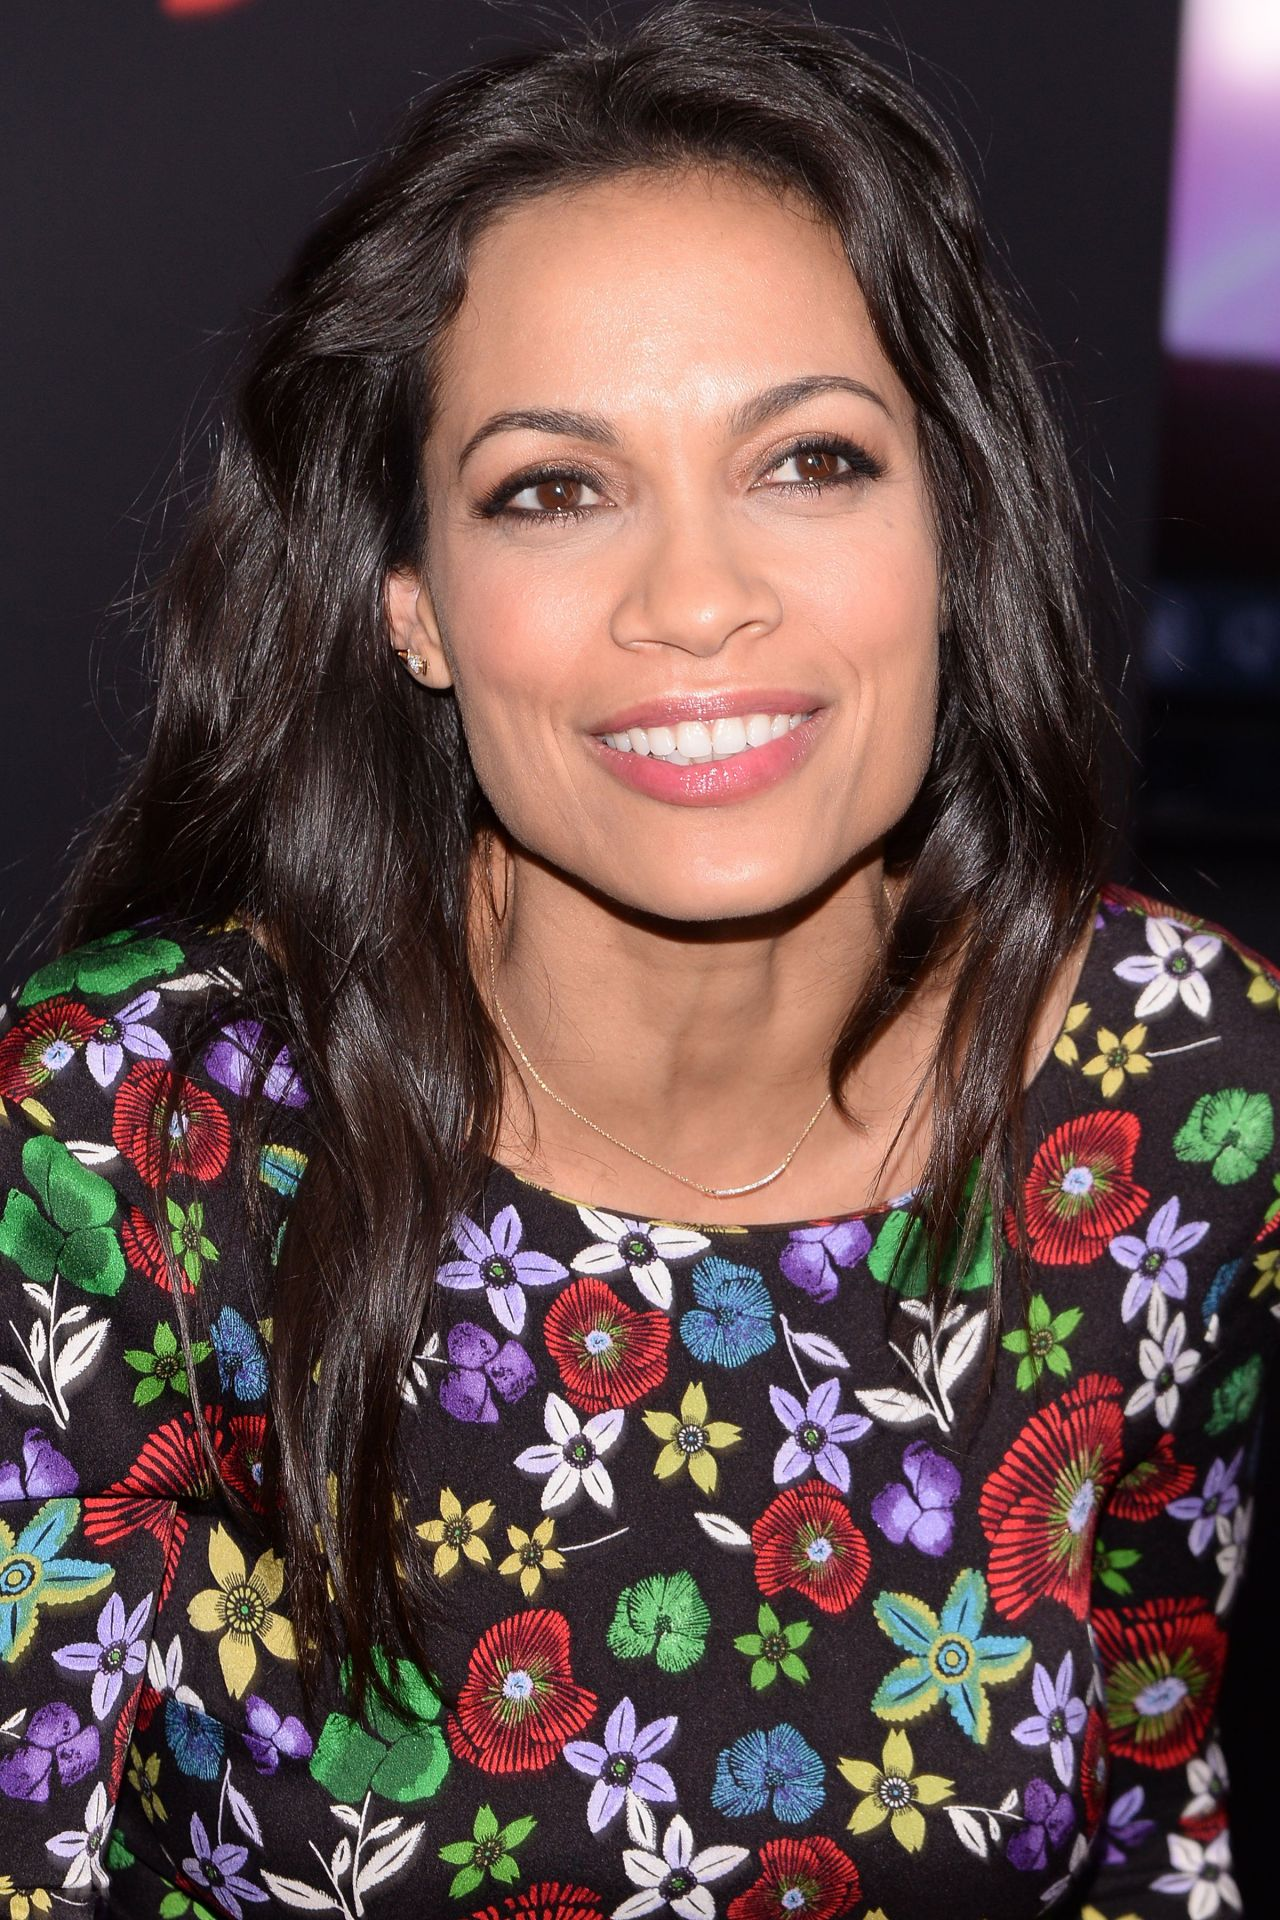 Rosario Dawson - 'Daredevil' Season 2 Premiere in New York ... Rosario Dawson